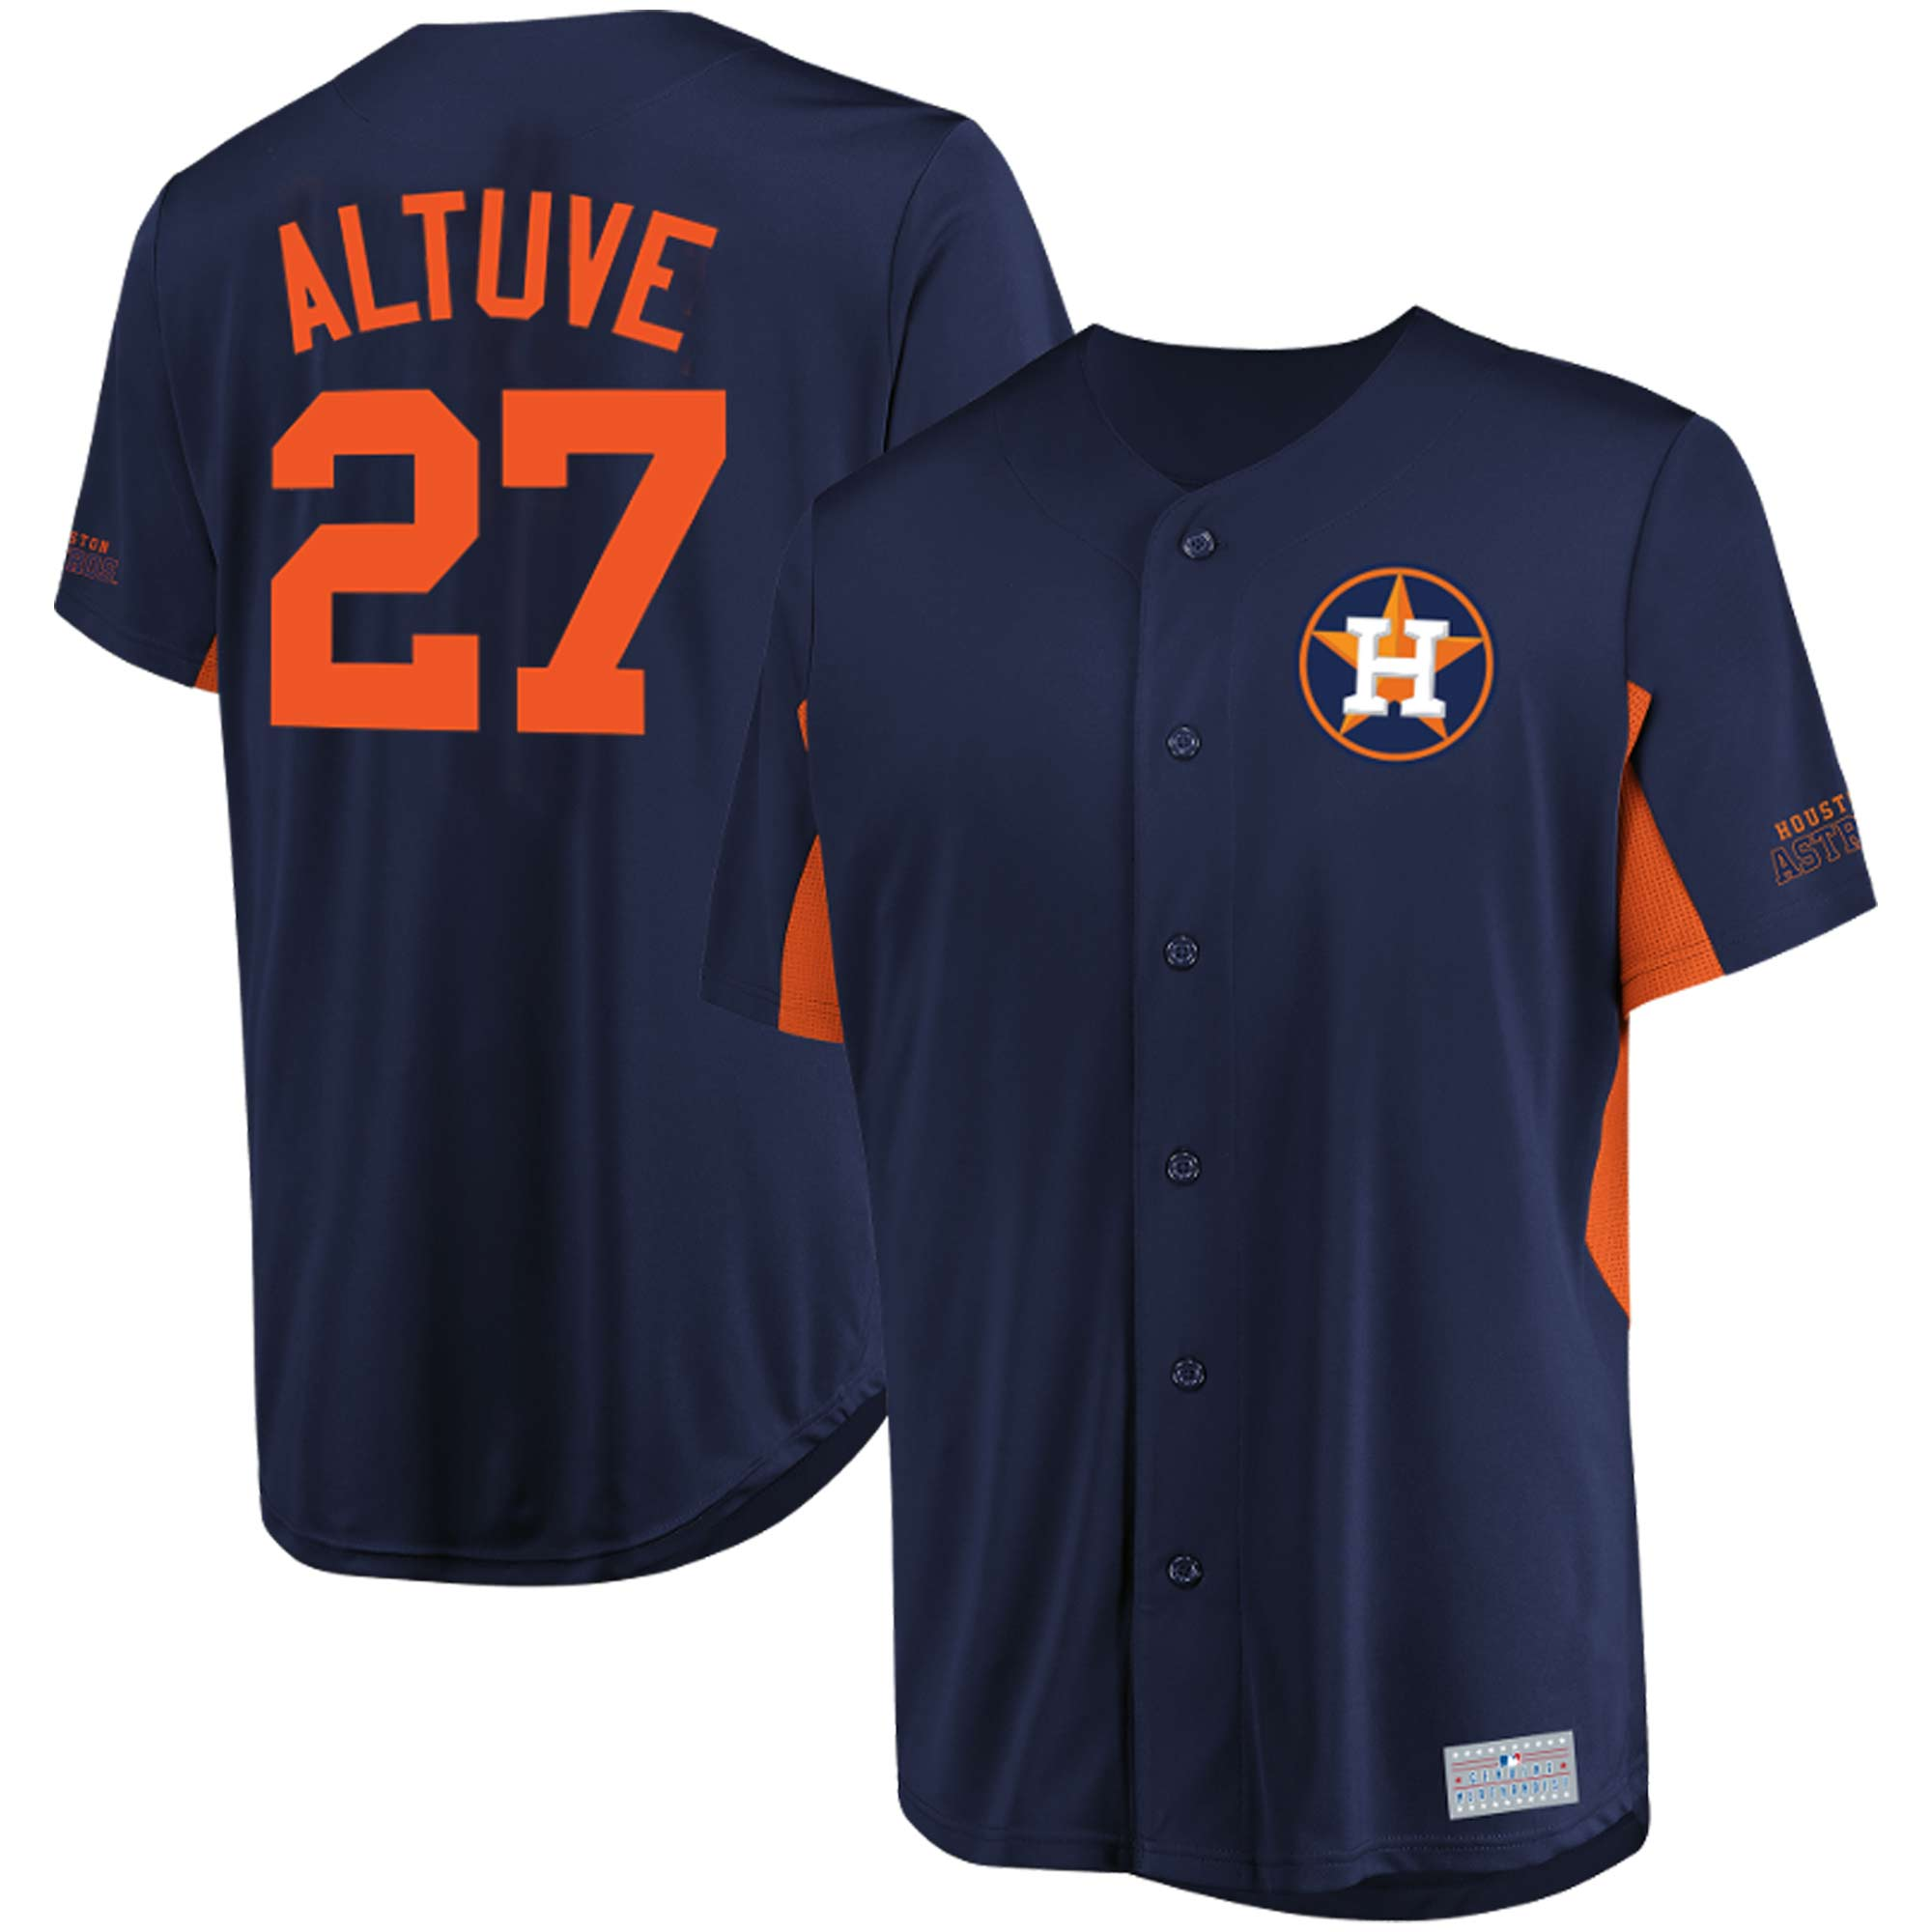 Jose Altuve Houston Astros Majestic MLB Jersey - Navy